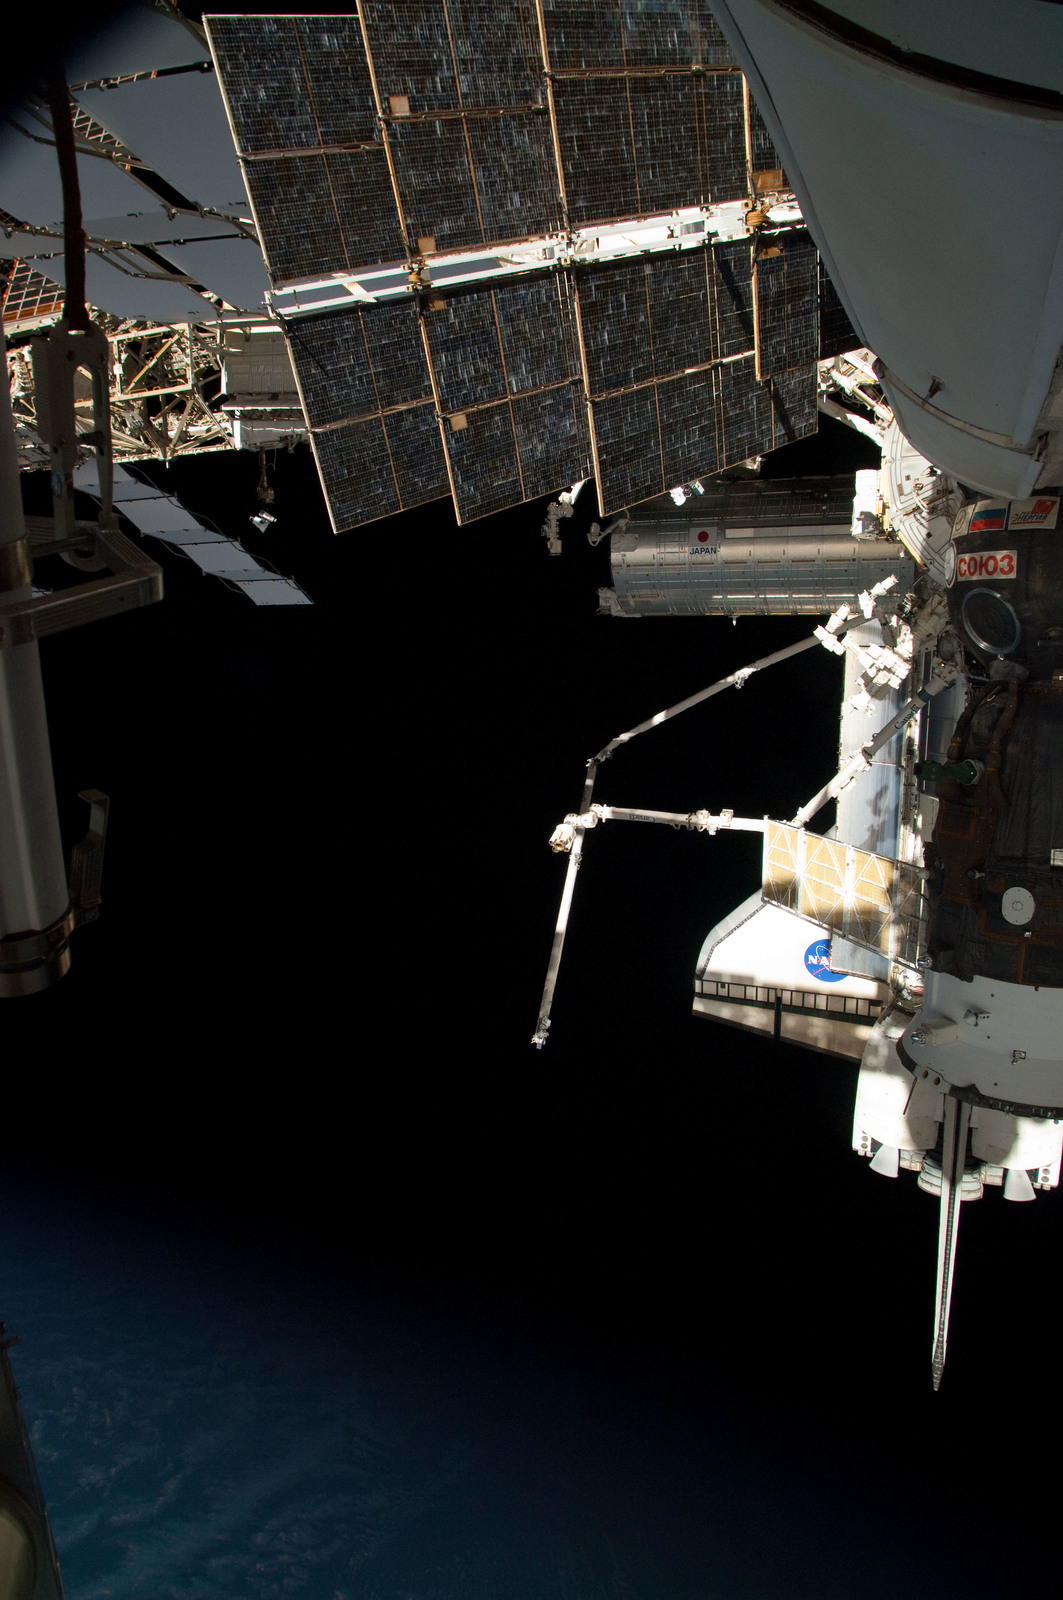 S126E025045 - STS-126 - View of ISS, Docked Soyuz and Endeavour